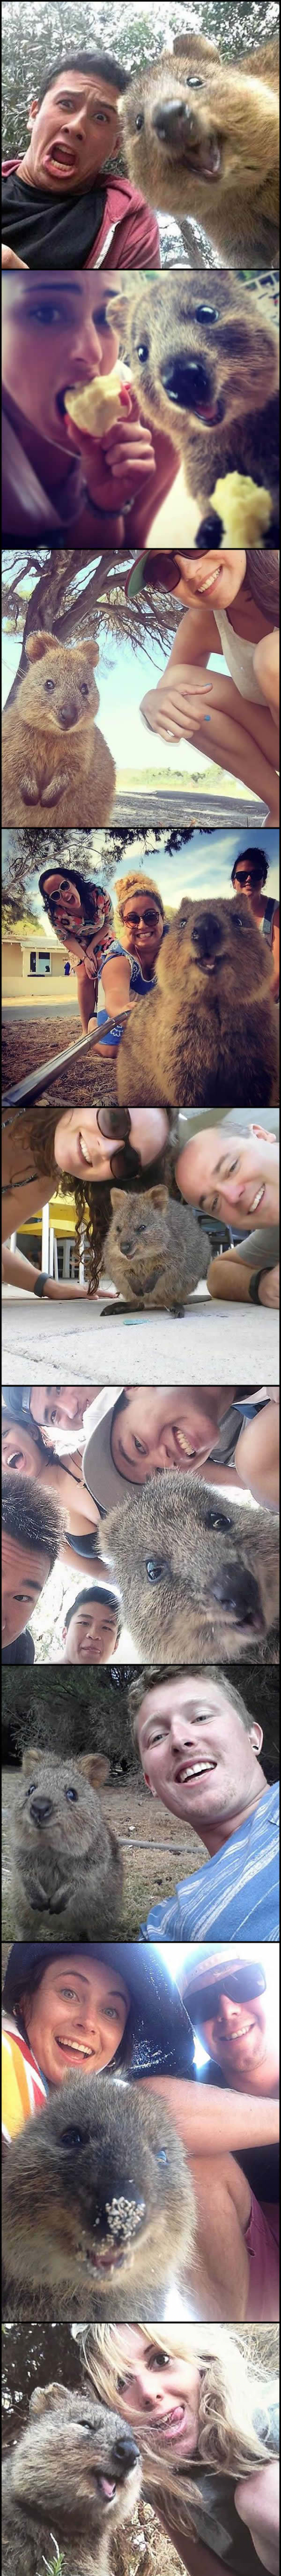 photogenic quokka